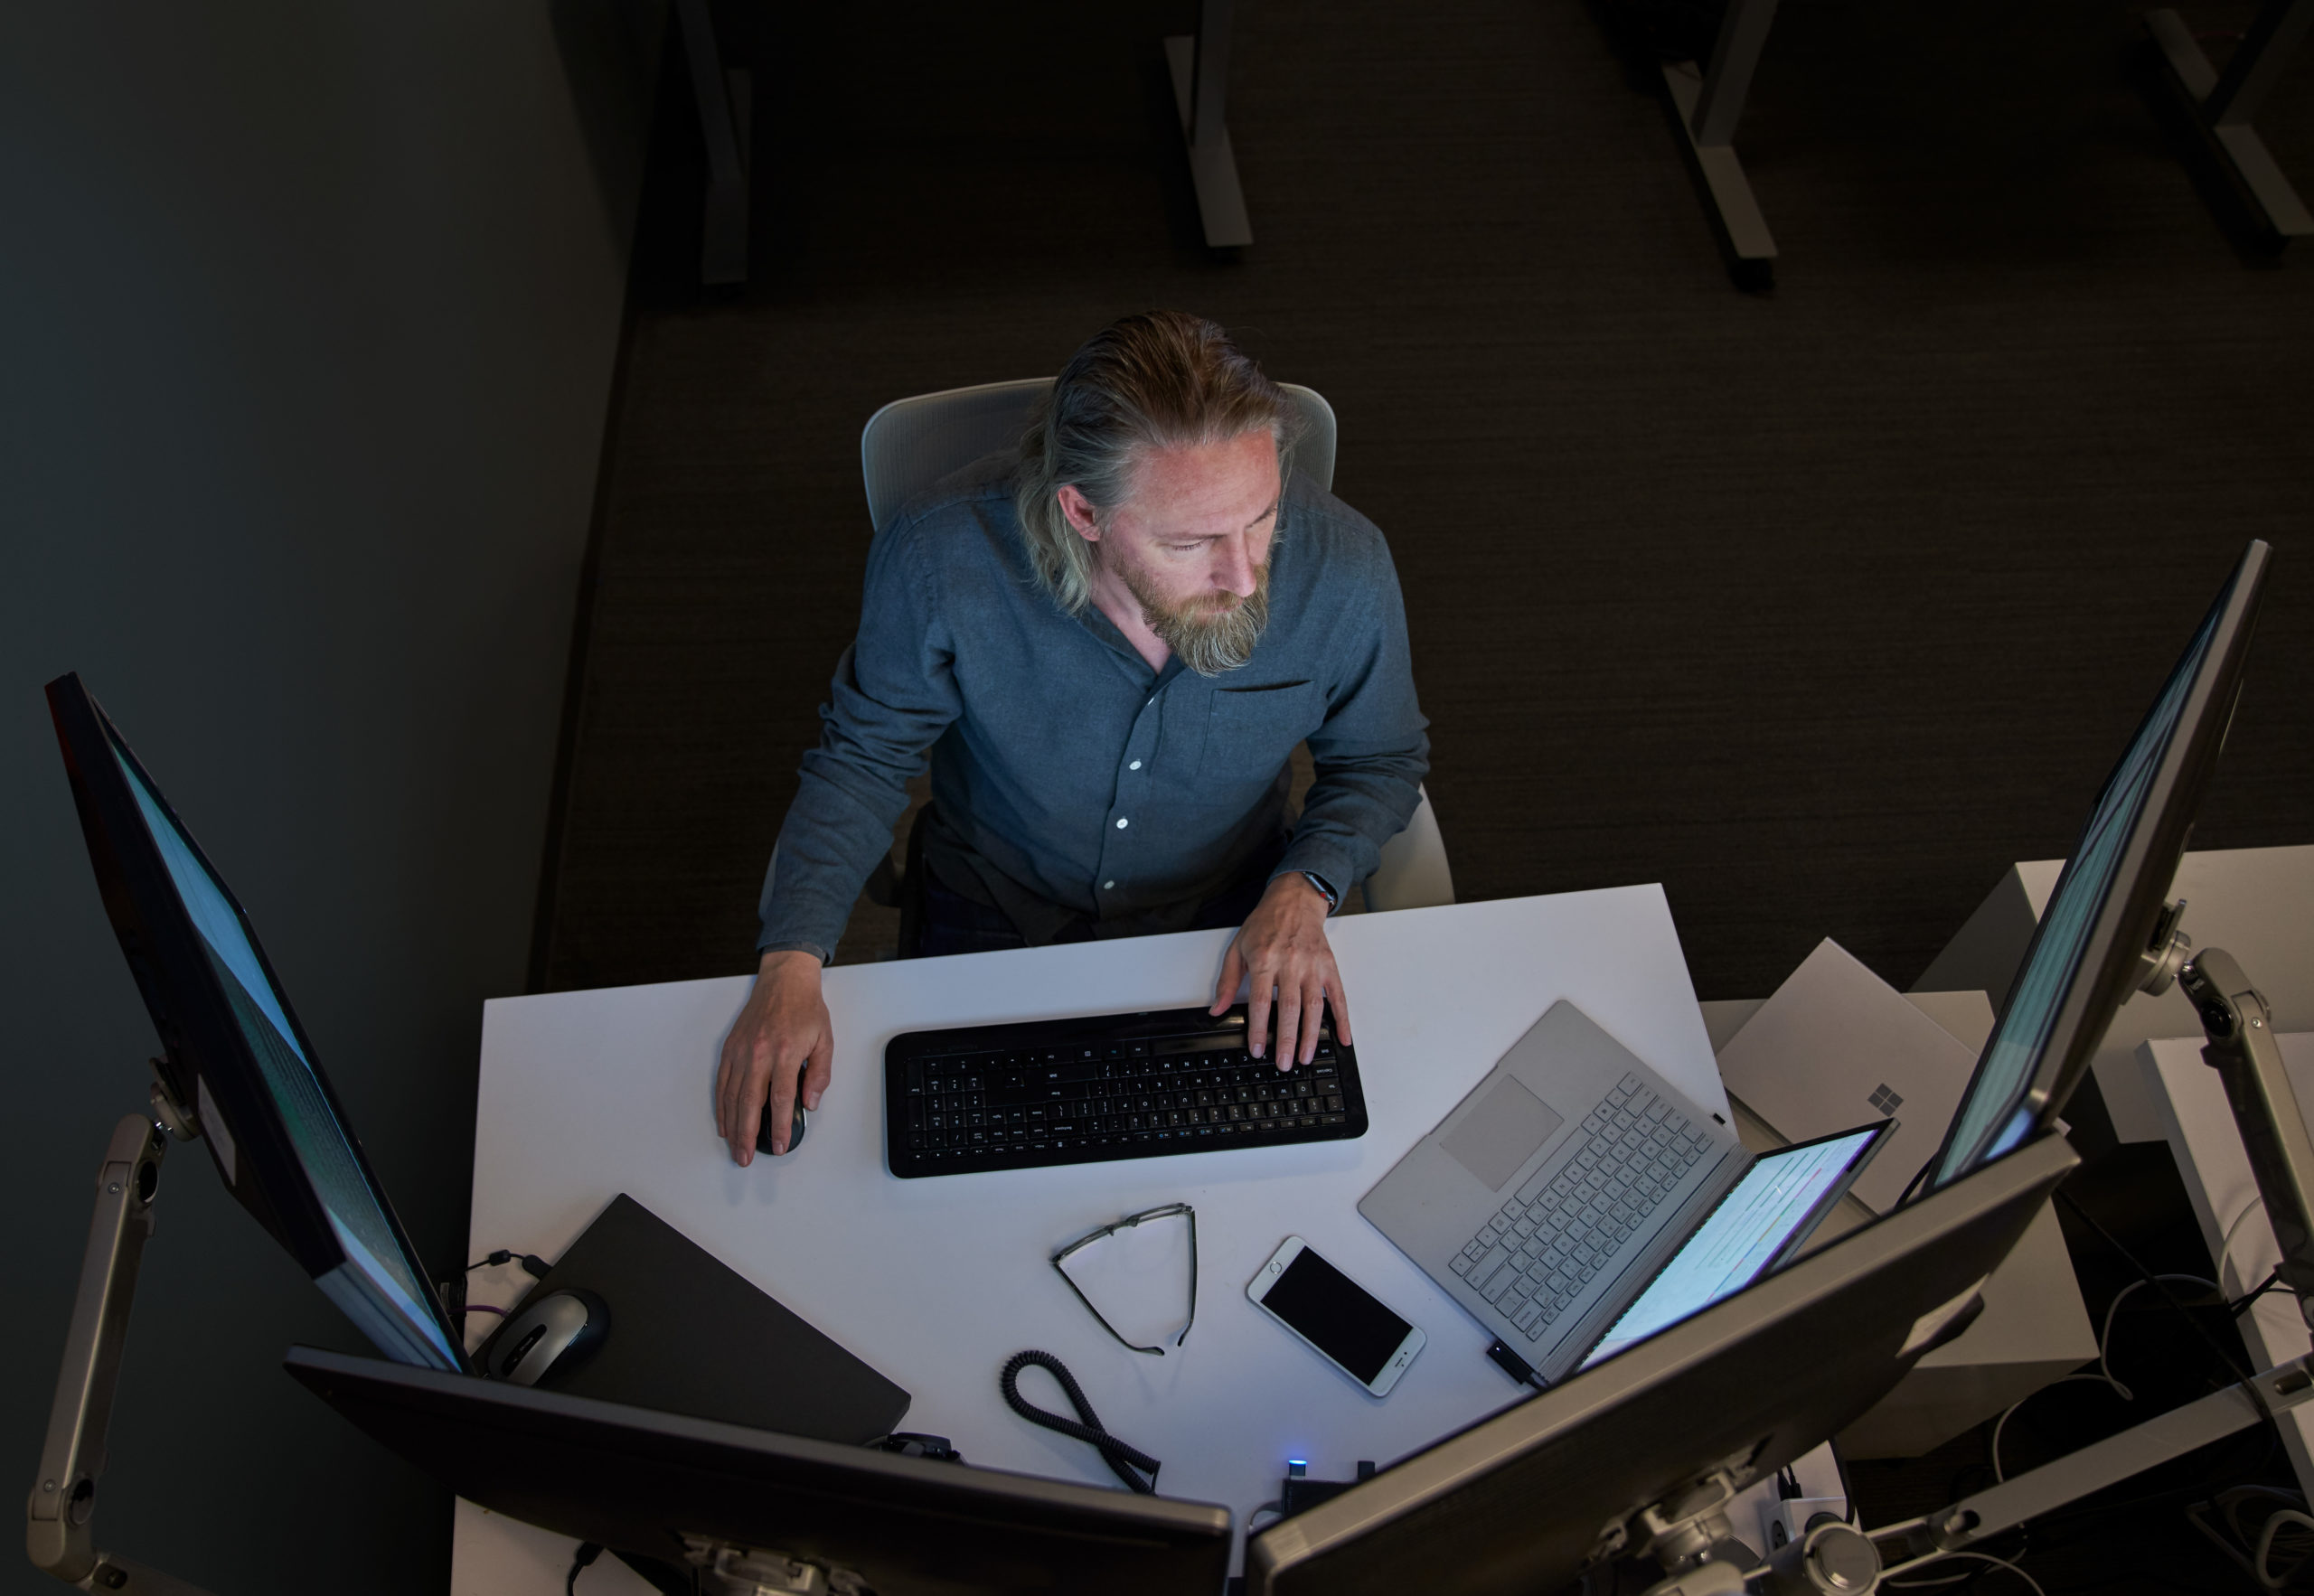 Top-down view of a bearded man in a gray/blue shirt seated at a desk working on a Surface laptop connected to three large monitors.